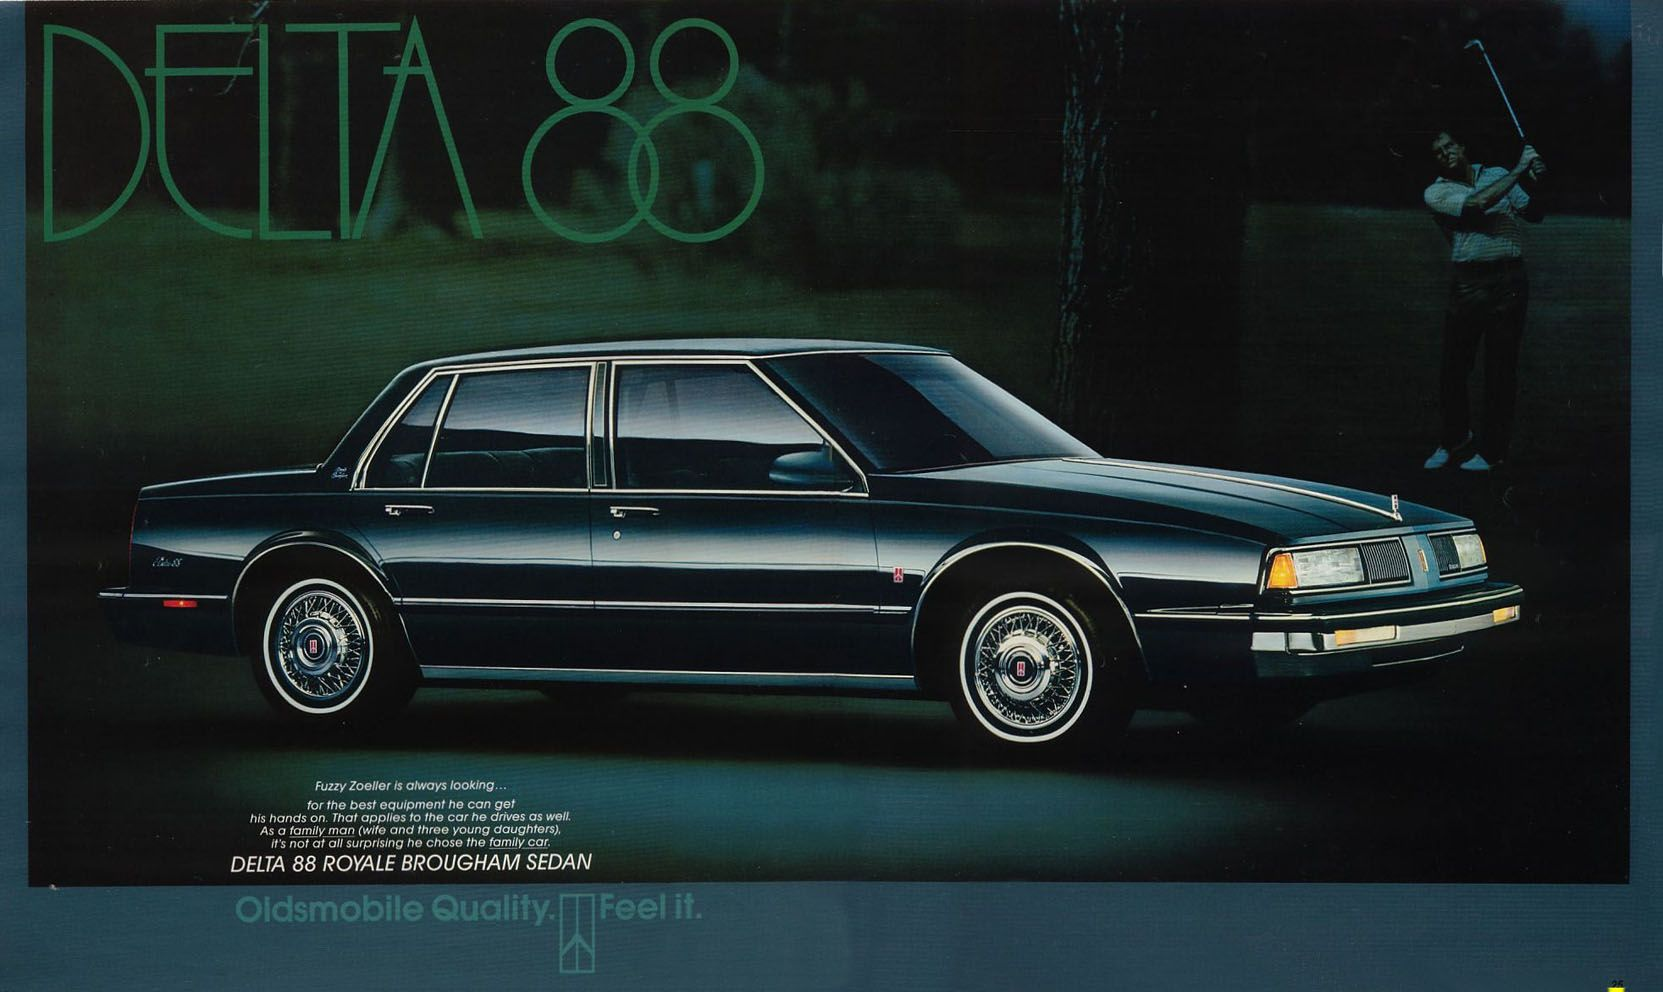 87 Oldsmobile Delta 88... I want to get one and slam it down.